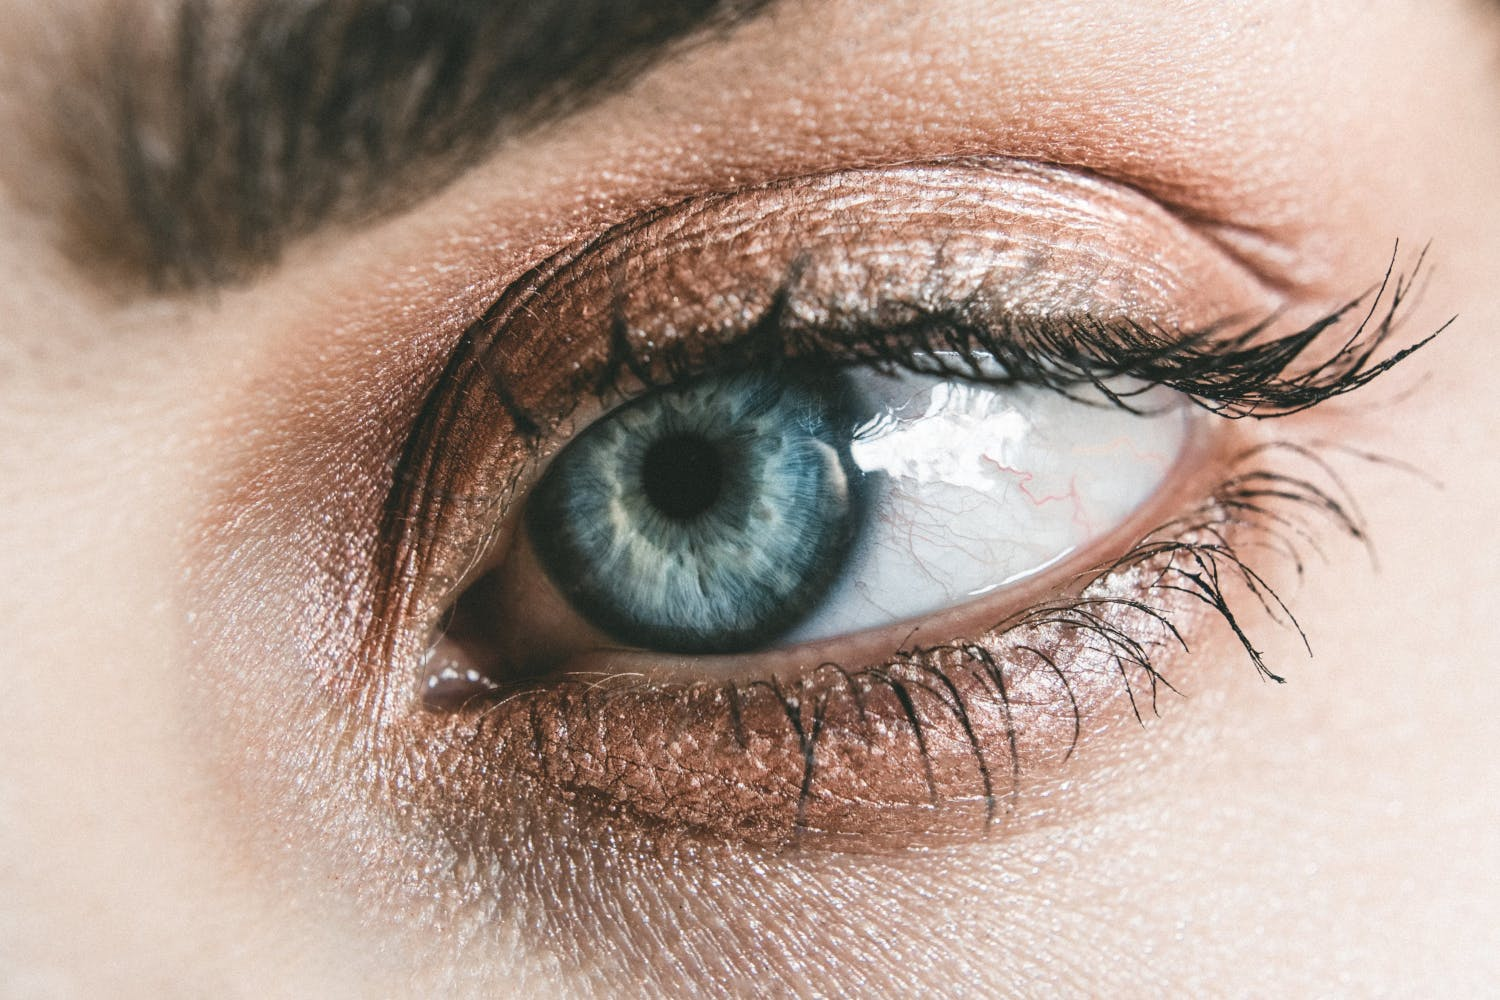 debunking eyelash growth myths and confirming the facts